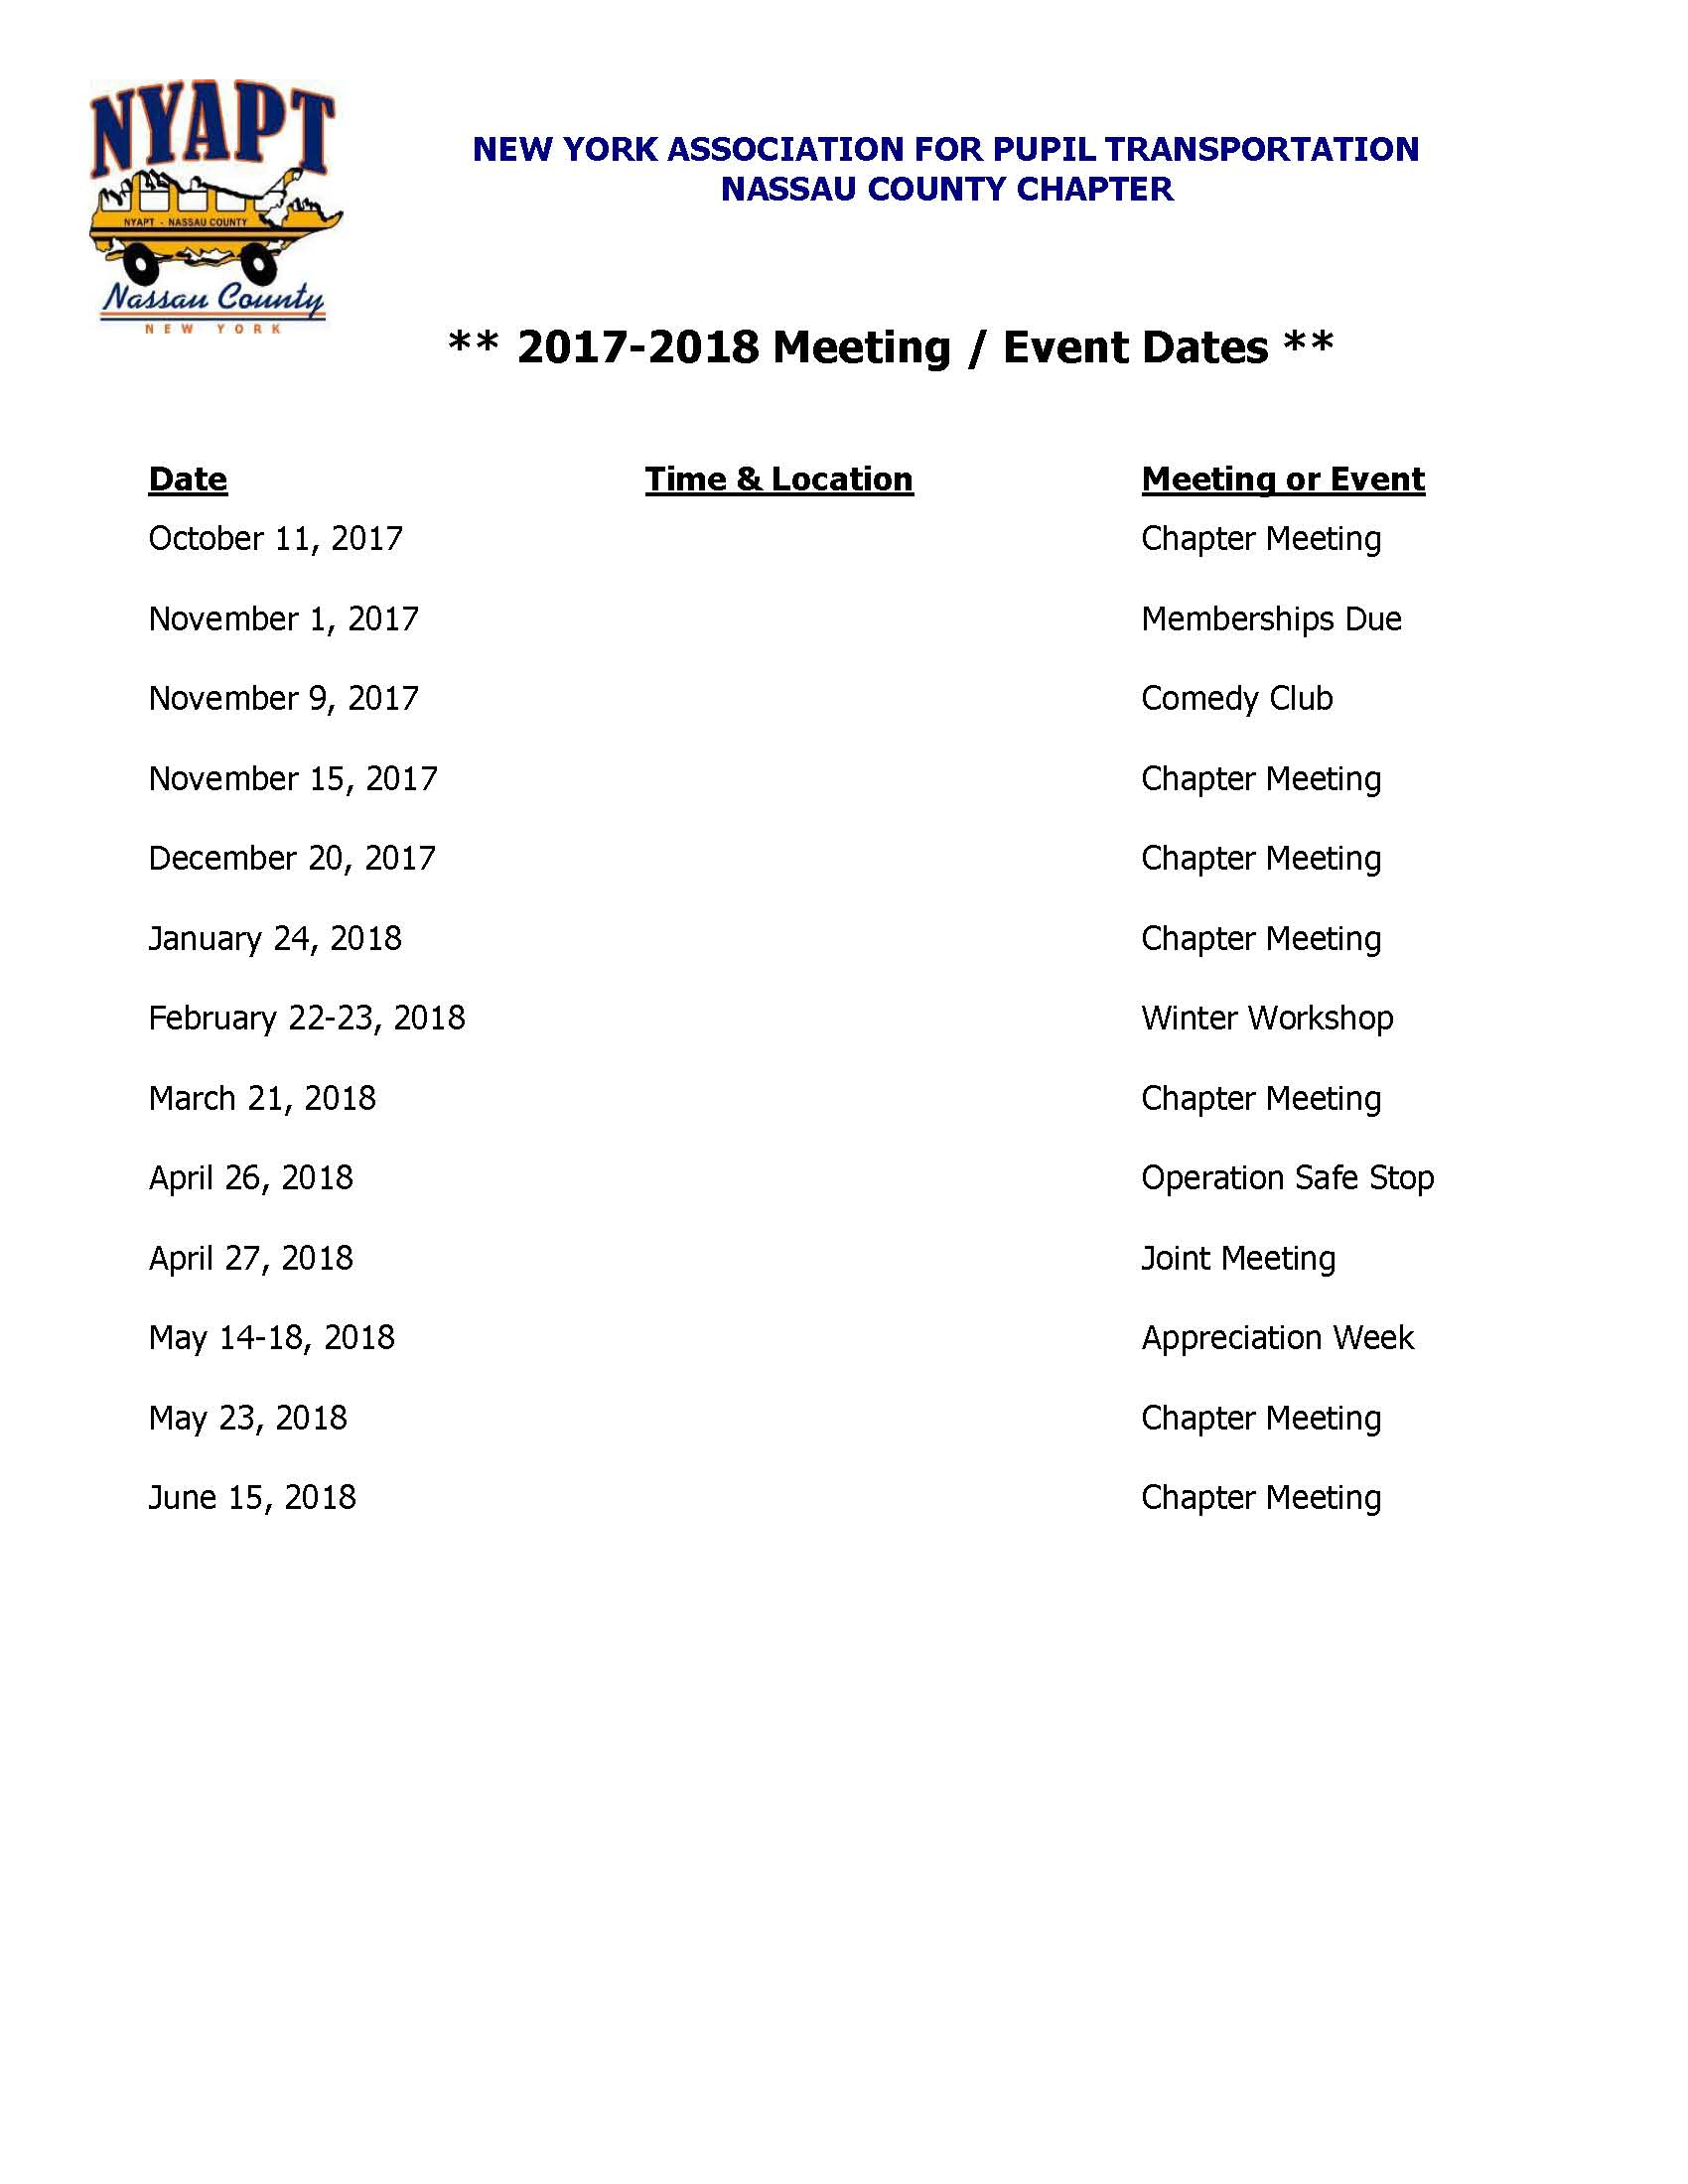 NYAPT Meeting Dates 2018 New York State Nassau County Chapter of Pupil Transportation